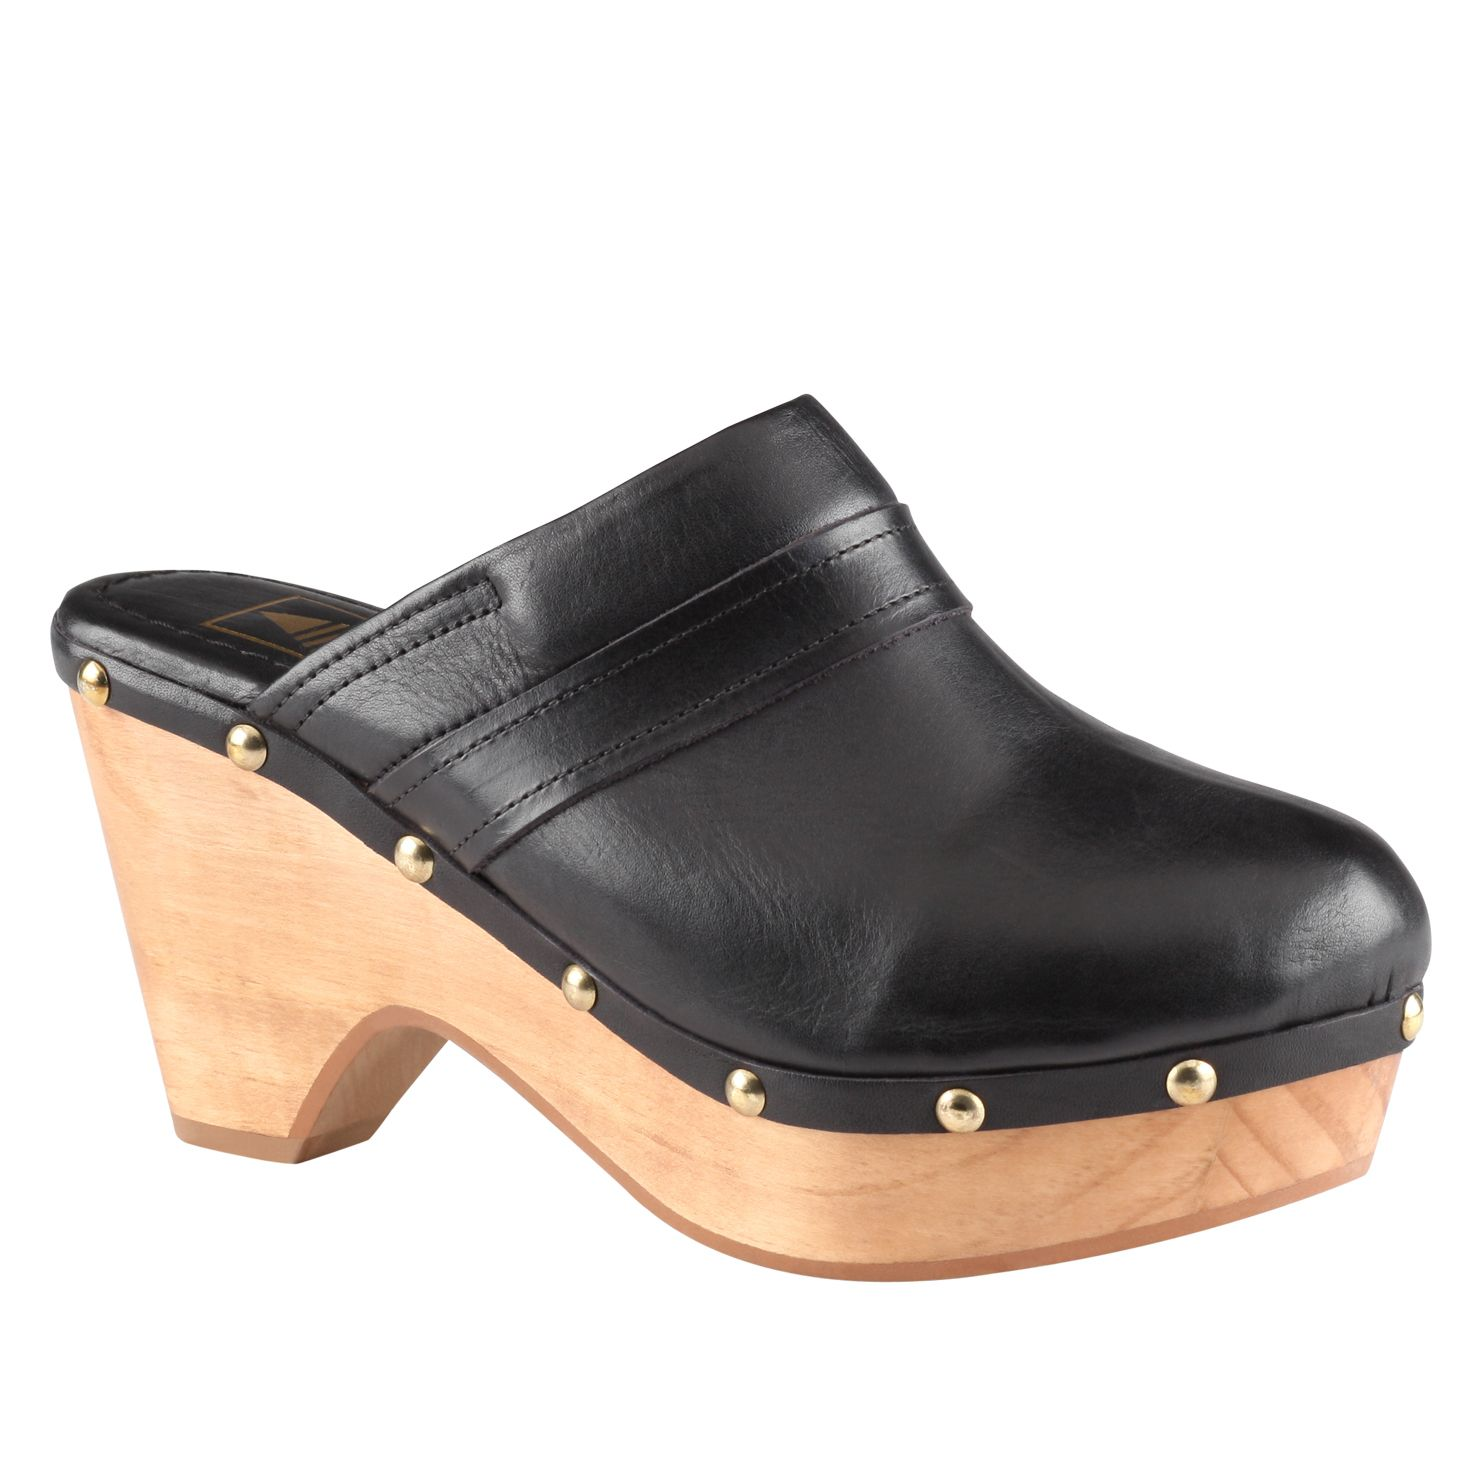 Frida platform shoes